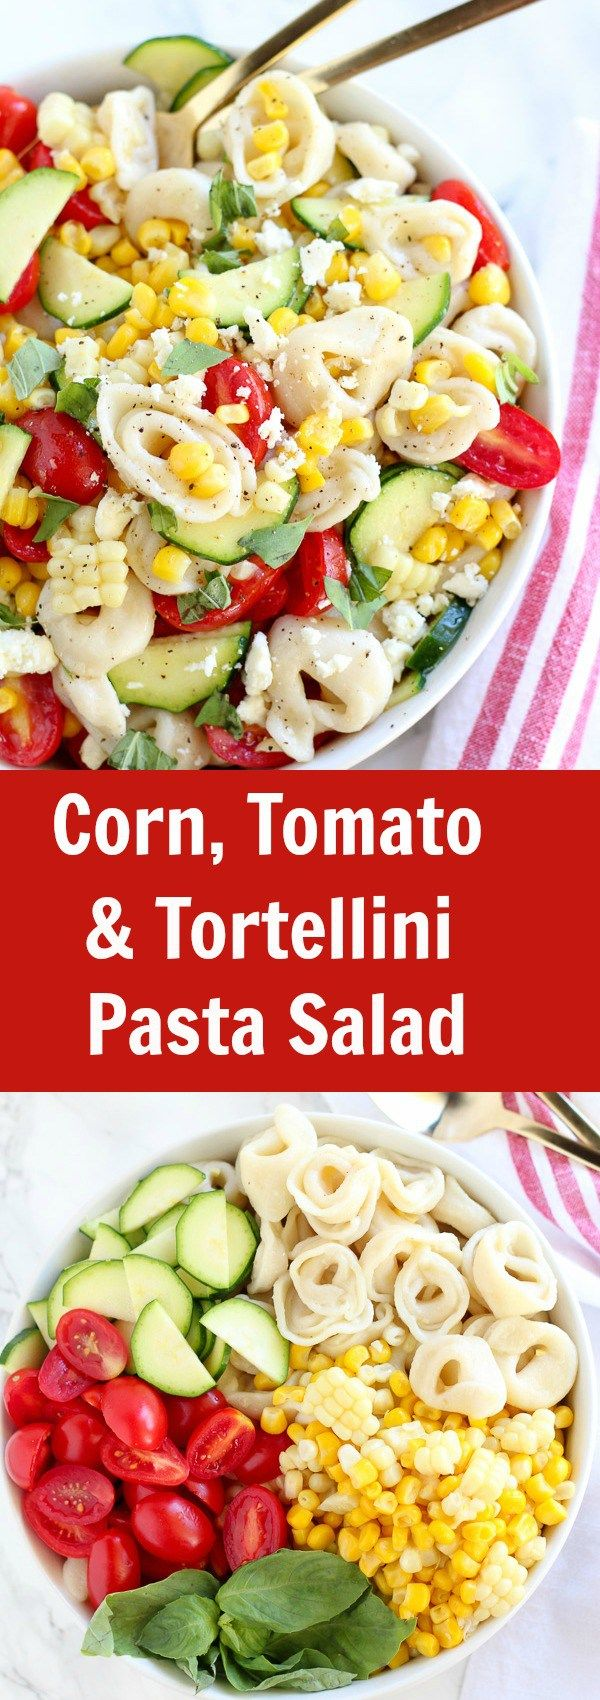 Summer Corn, Tomato, and Tortellini Pasta Salad - A summery pasta salad filled with cheese tortellini, corn, tomatoes, zucchini, and basil topped with a fresh lemon vinaigrette. Serve chilled or at room temperature. This recipe makes a fabulous side dish for your next summer party!